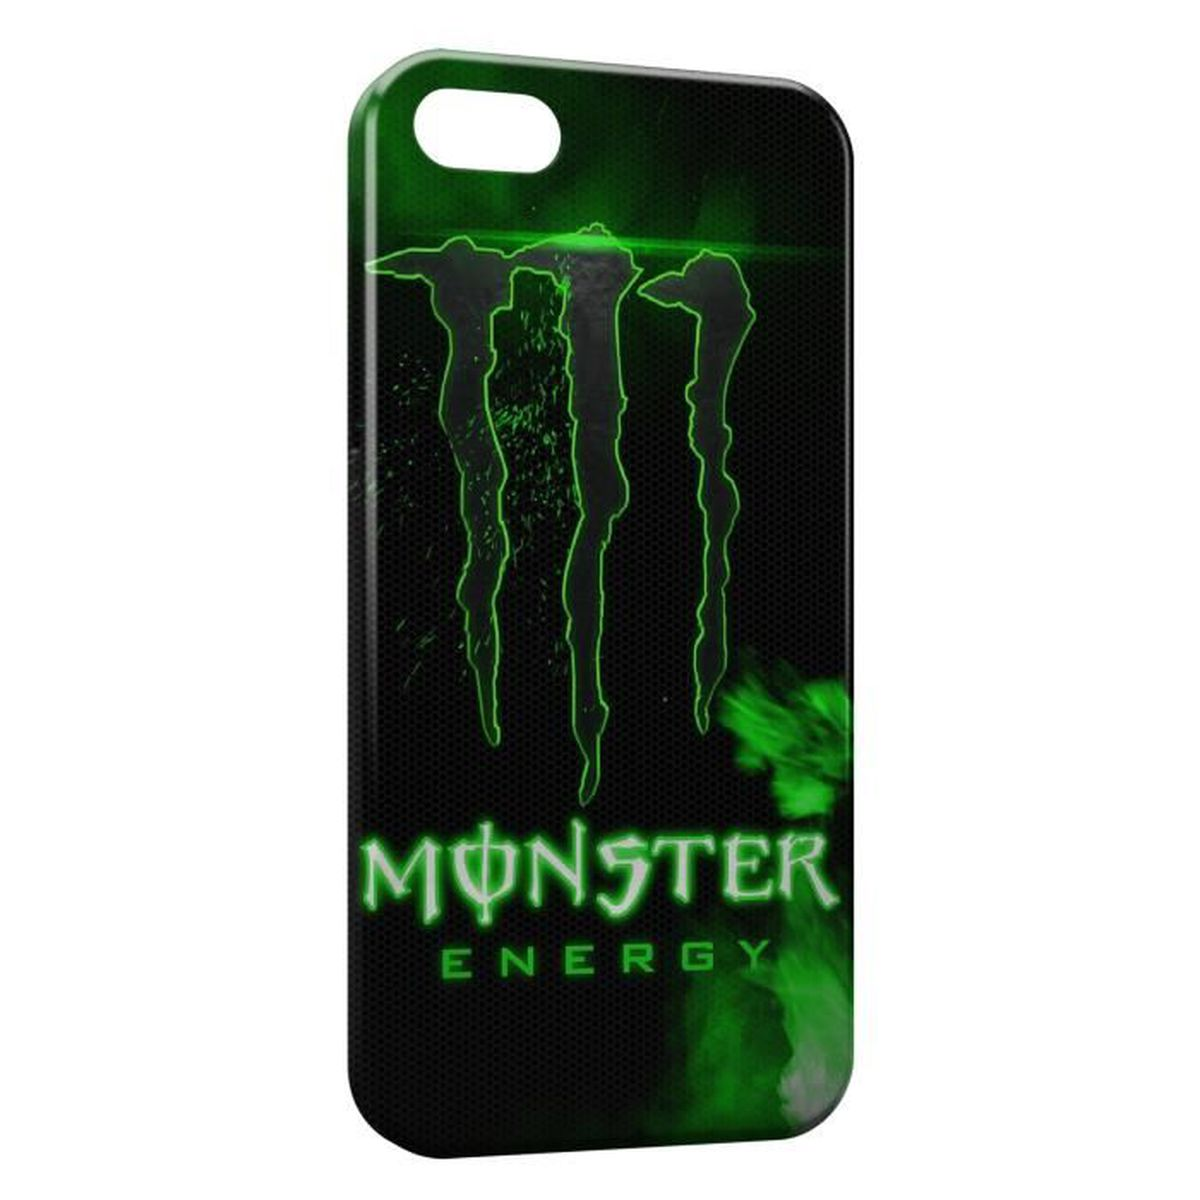 Coque iphone 5 monster energy achat vente coque iphone for Coque cdiscount